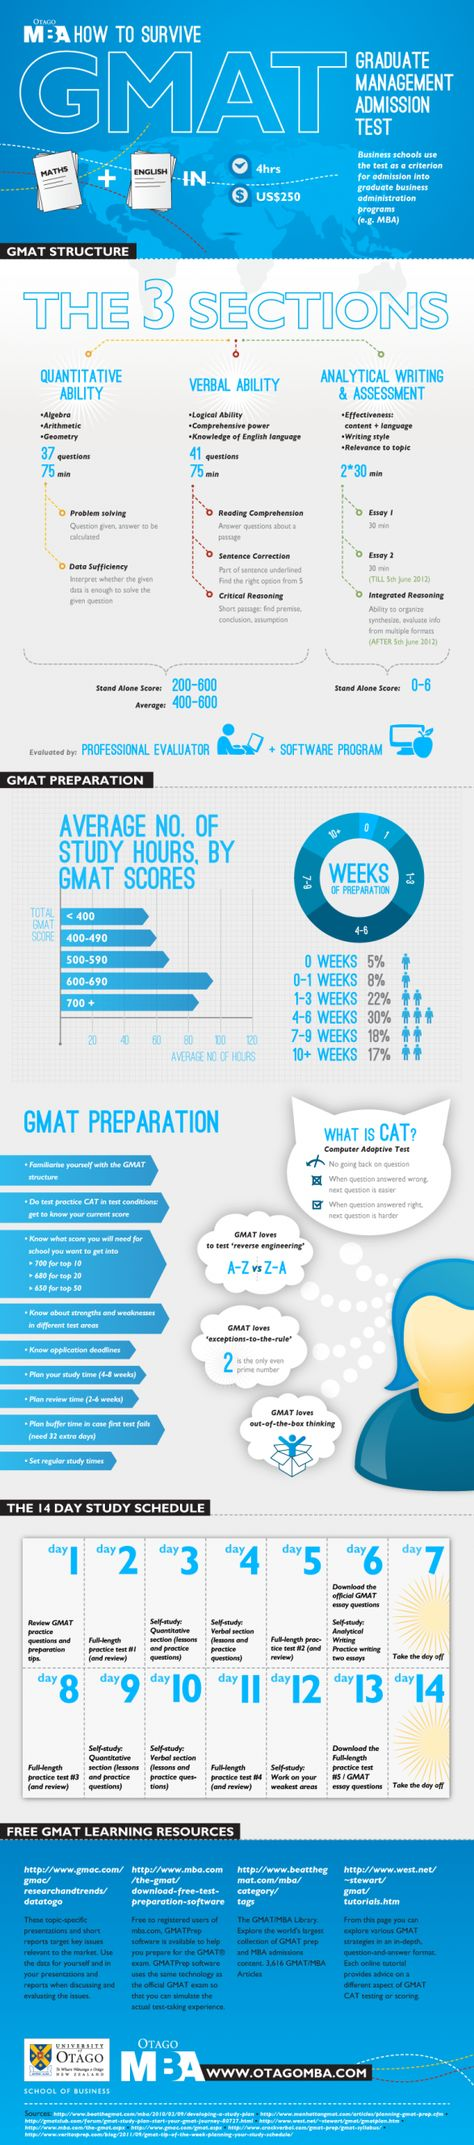 How To Ace Your GMAT Exams - For Prospective MBA Students